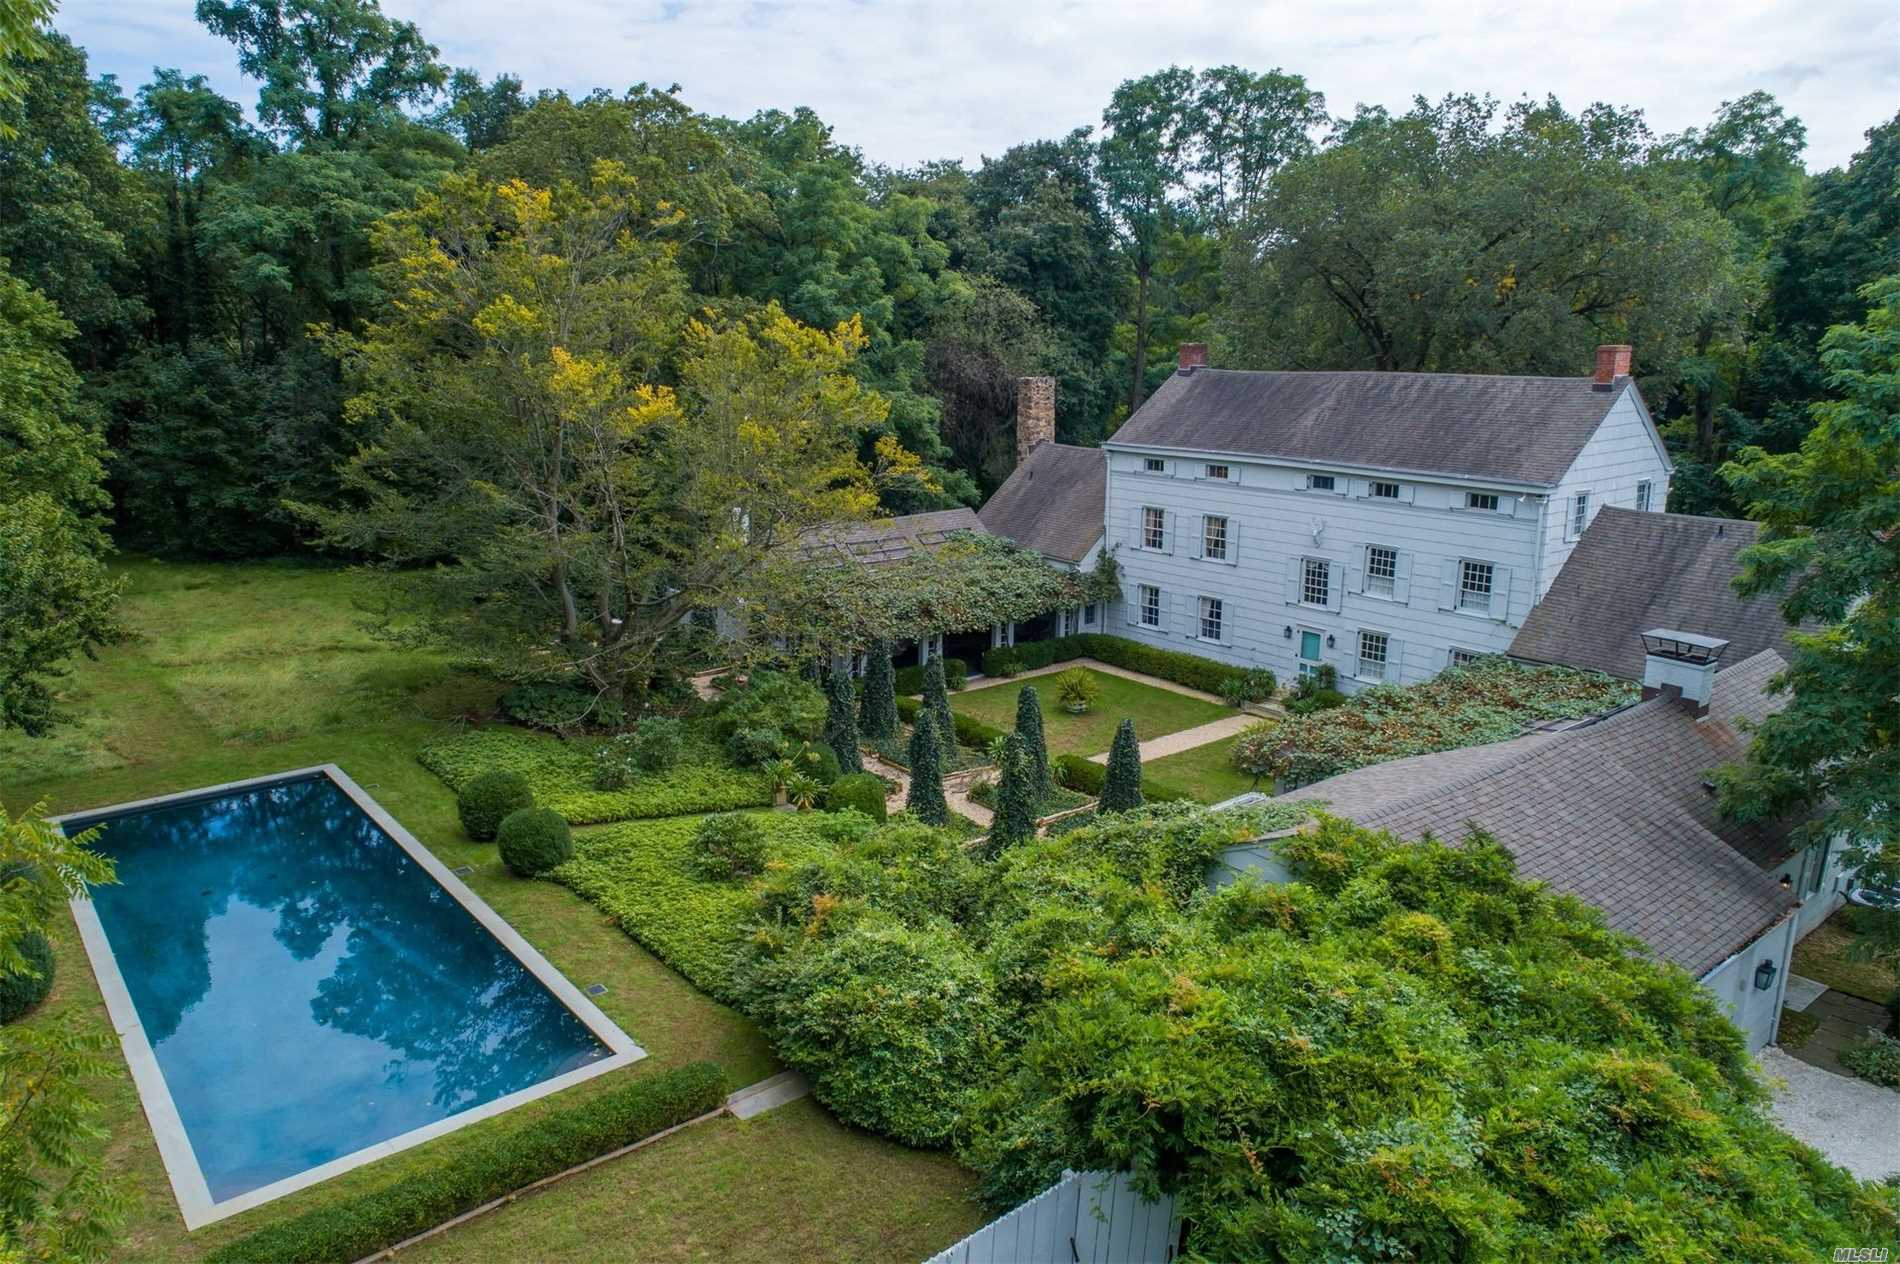 A unique example of 17th Century craftmanshhip w/the best materials & ongoing attention to the best in architectural classicism.The property has been restored & has been brought into the 21 century w/charming gardens for private living in a very special part of history.Historical house in the heart of Locust Valley w/Colonial details. Had served as a private school, an inn and tavern.